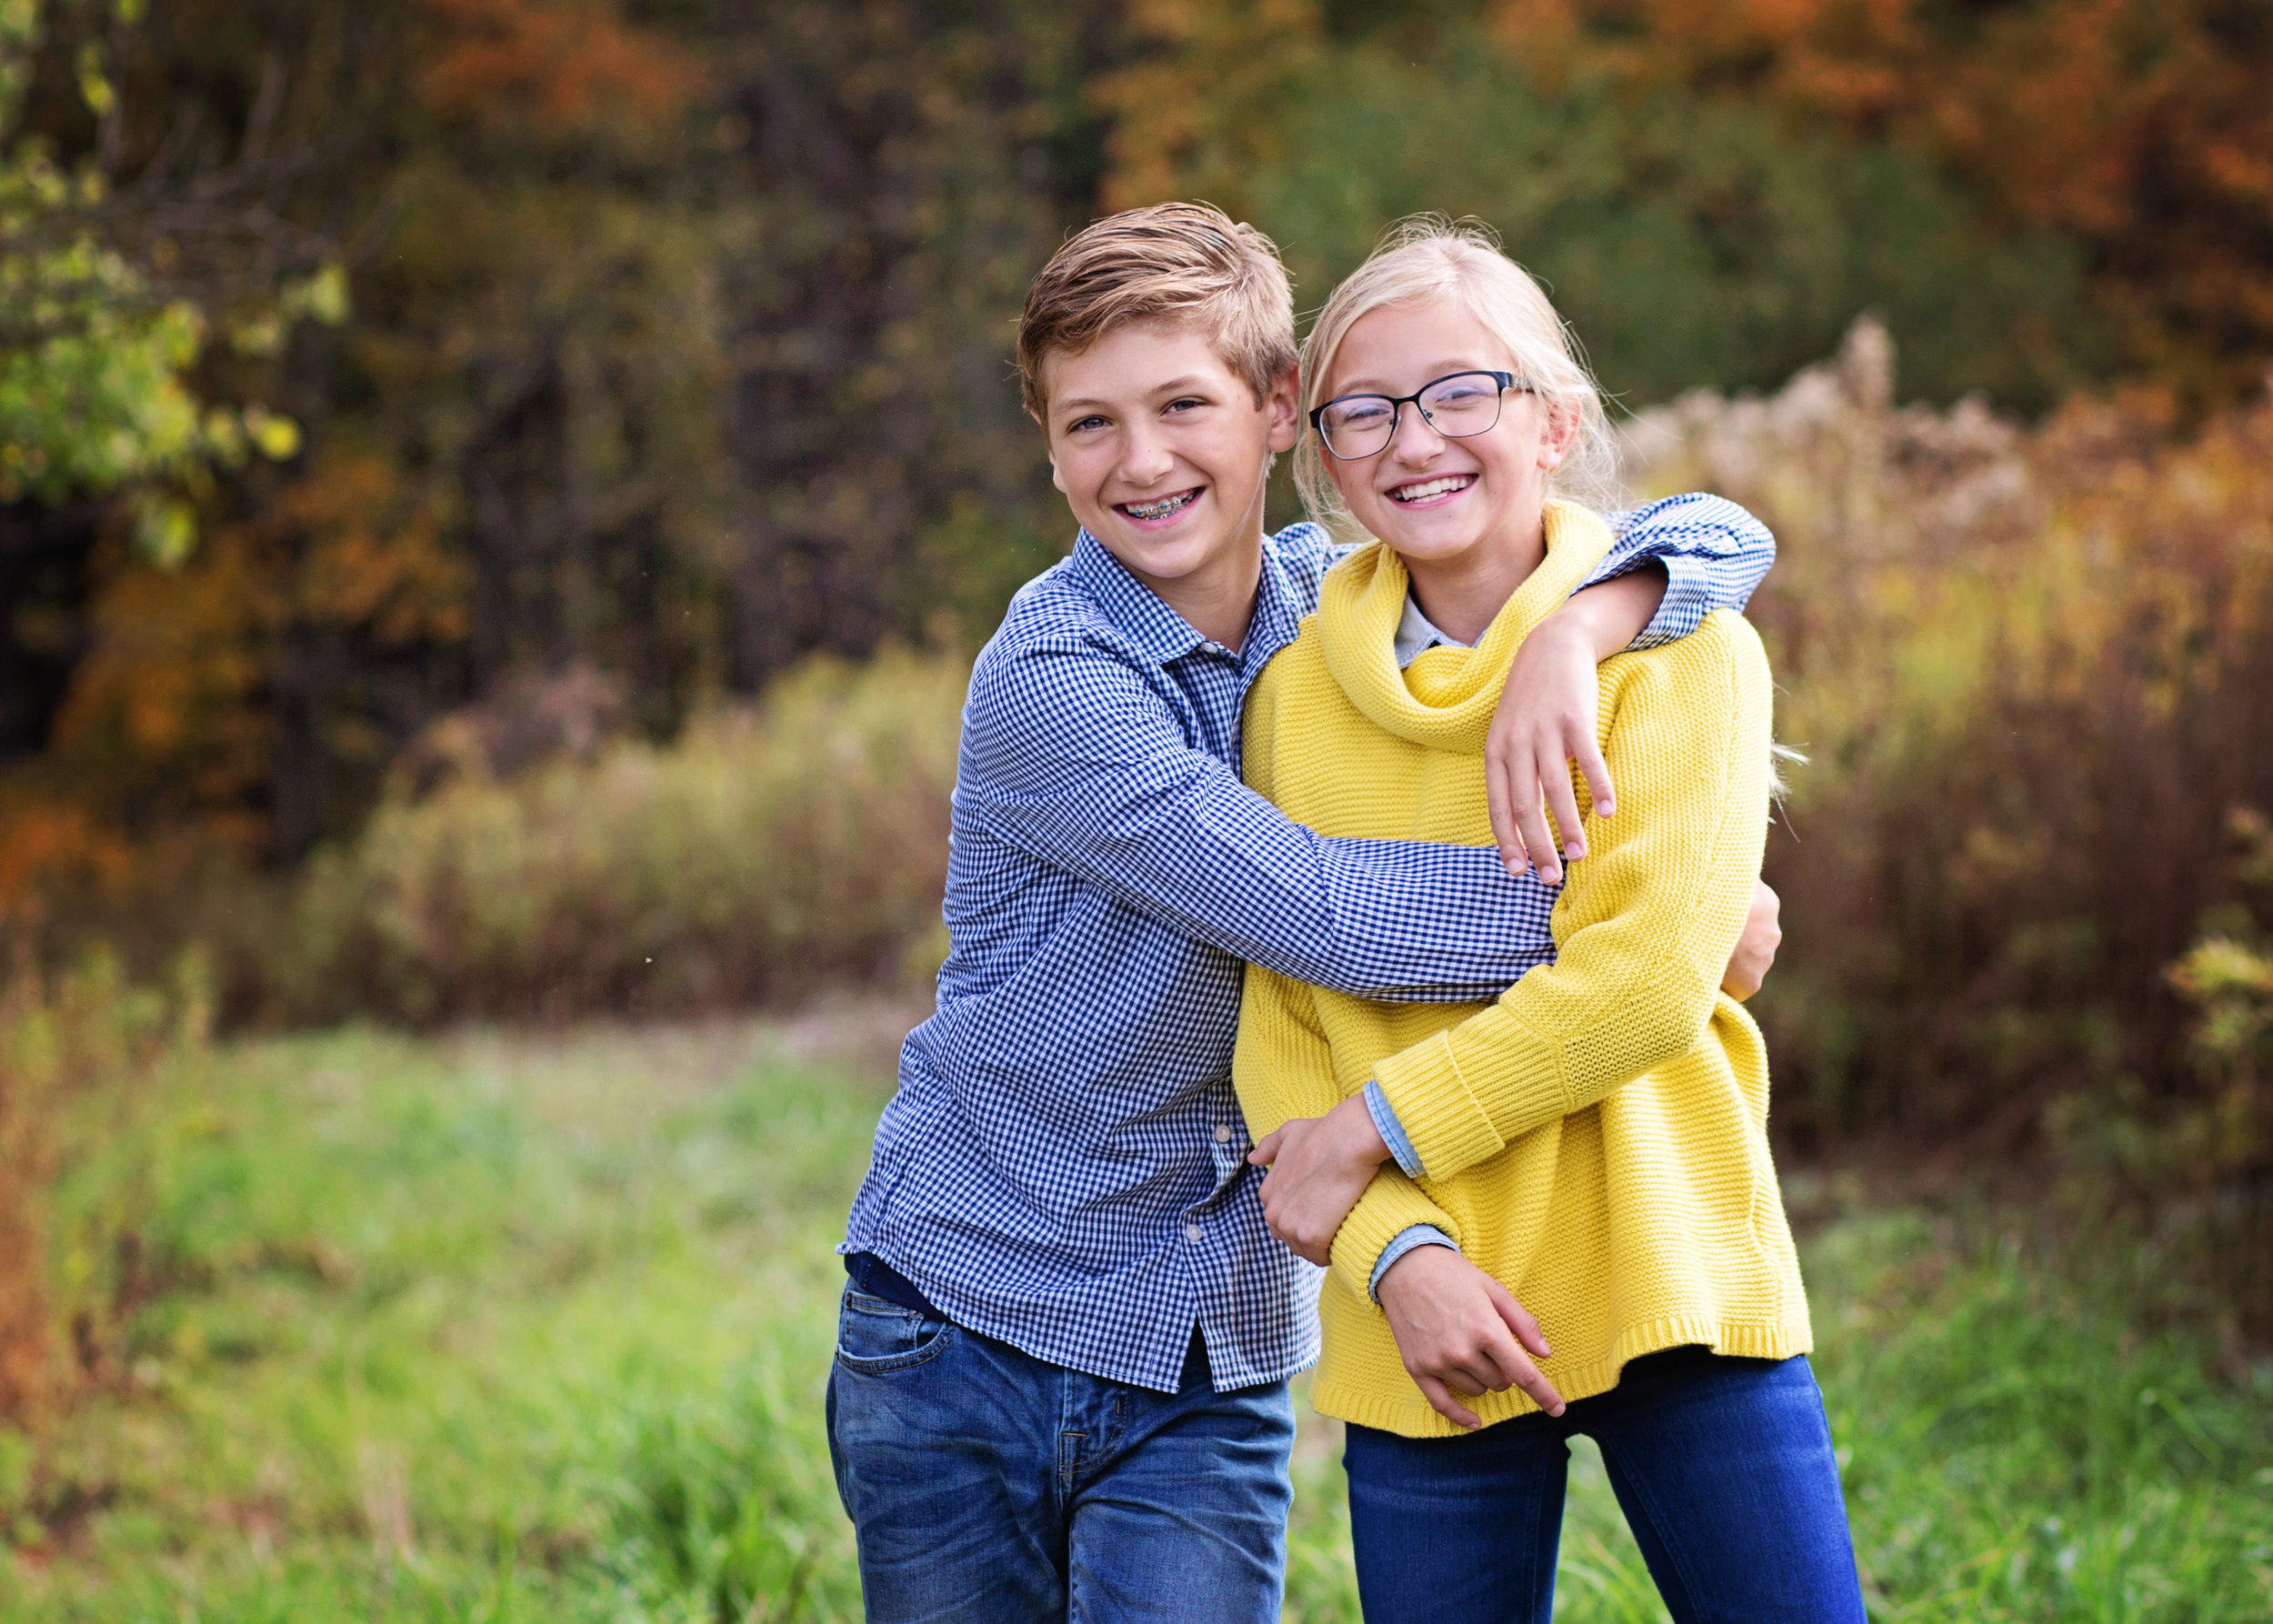 Siblings | Kelly Rhoades Photography